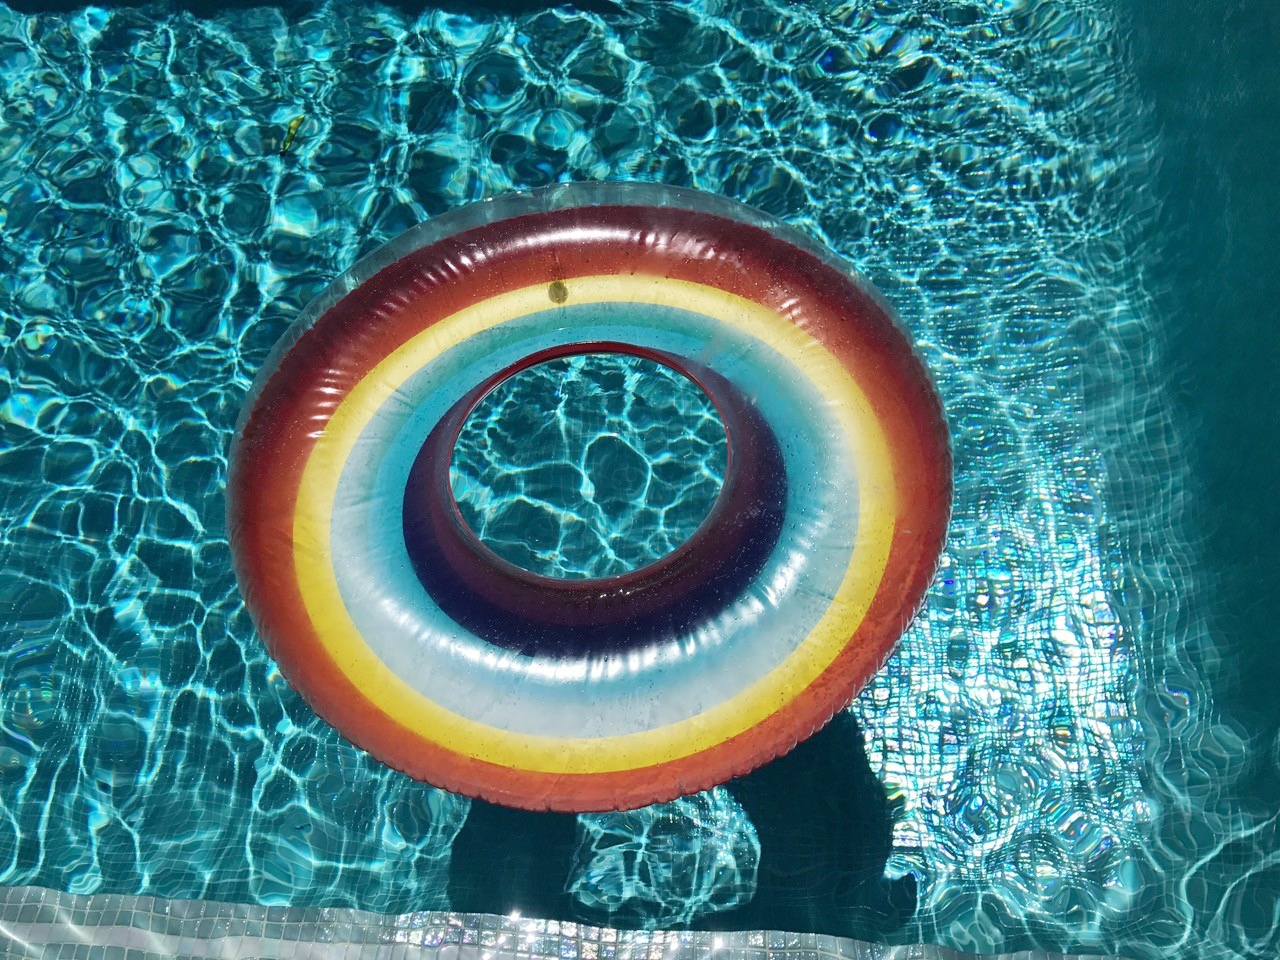 A post-lunch swim with inflatable rainbow pool toys